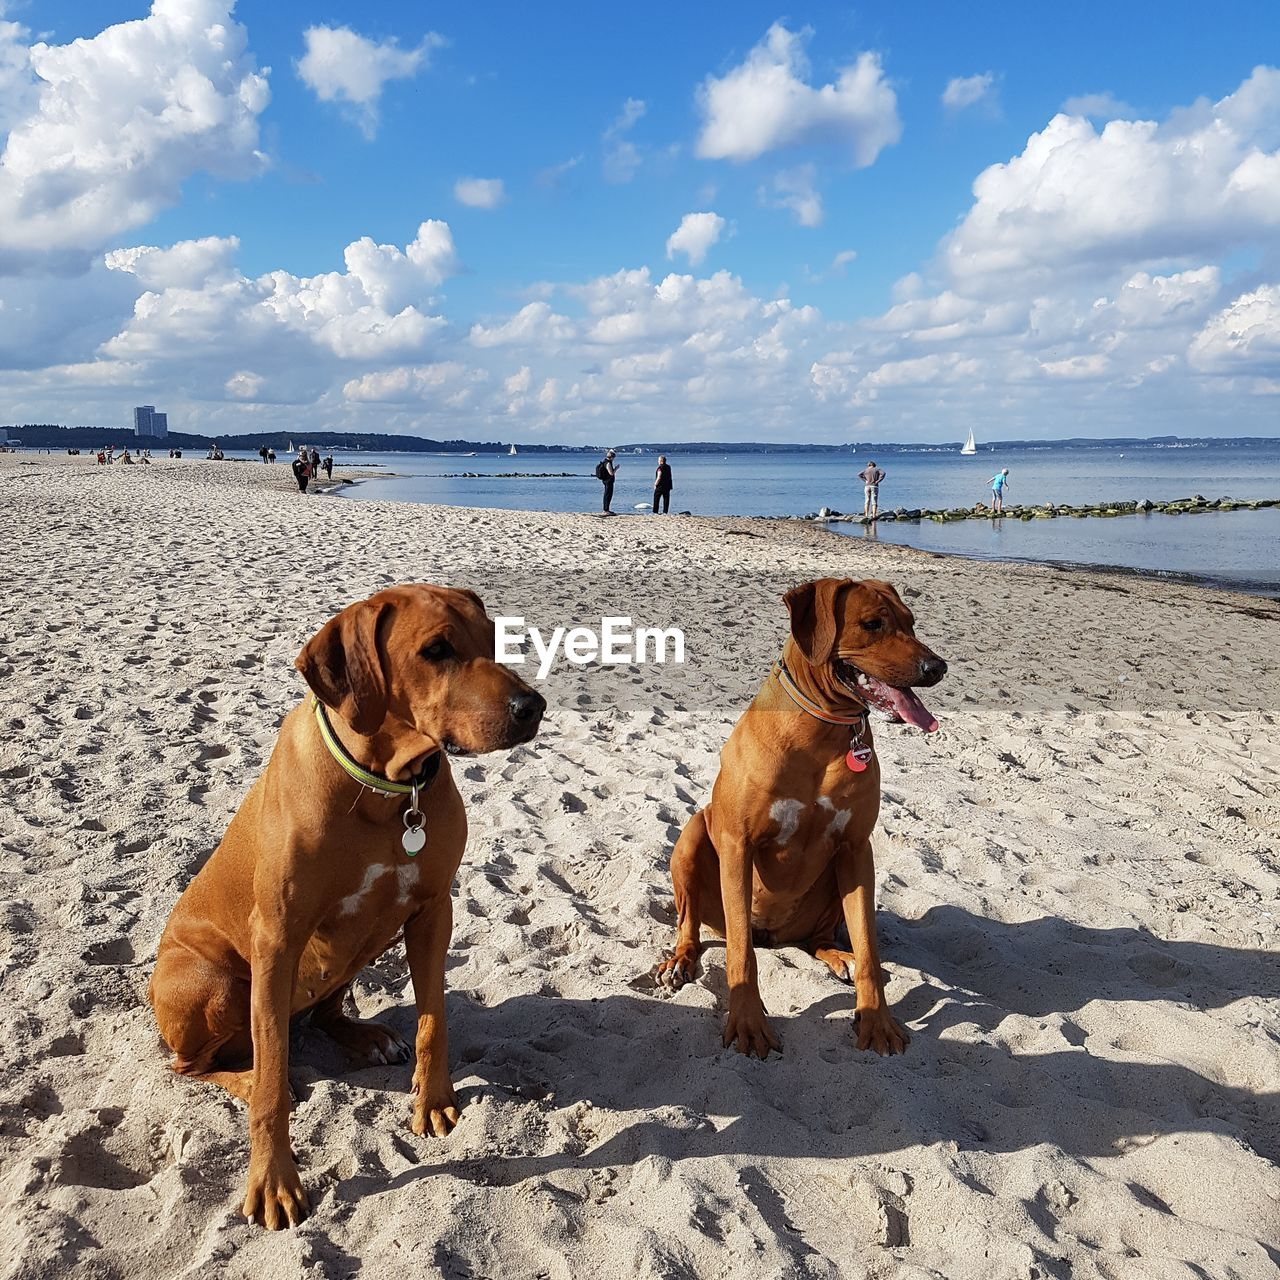 dog, pets, domestic animals, animal themes, mammal, sky, sea, sand, day, outdoors, nature, beach, sunlight, cloud - sky, no people, water, sitting, full length, togetherness, horizon over water